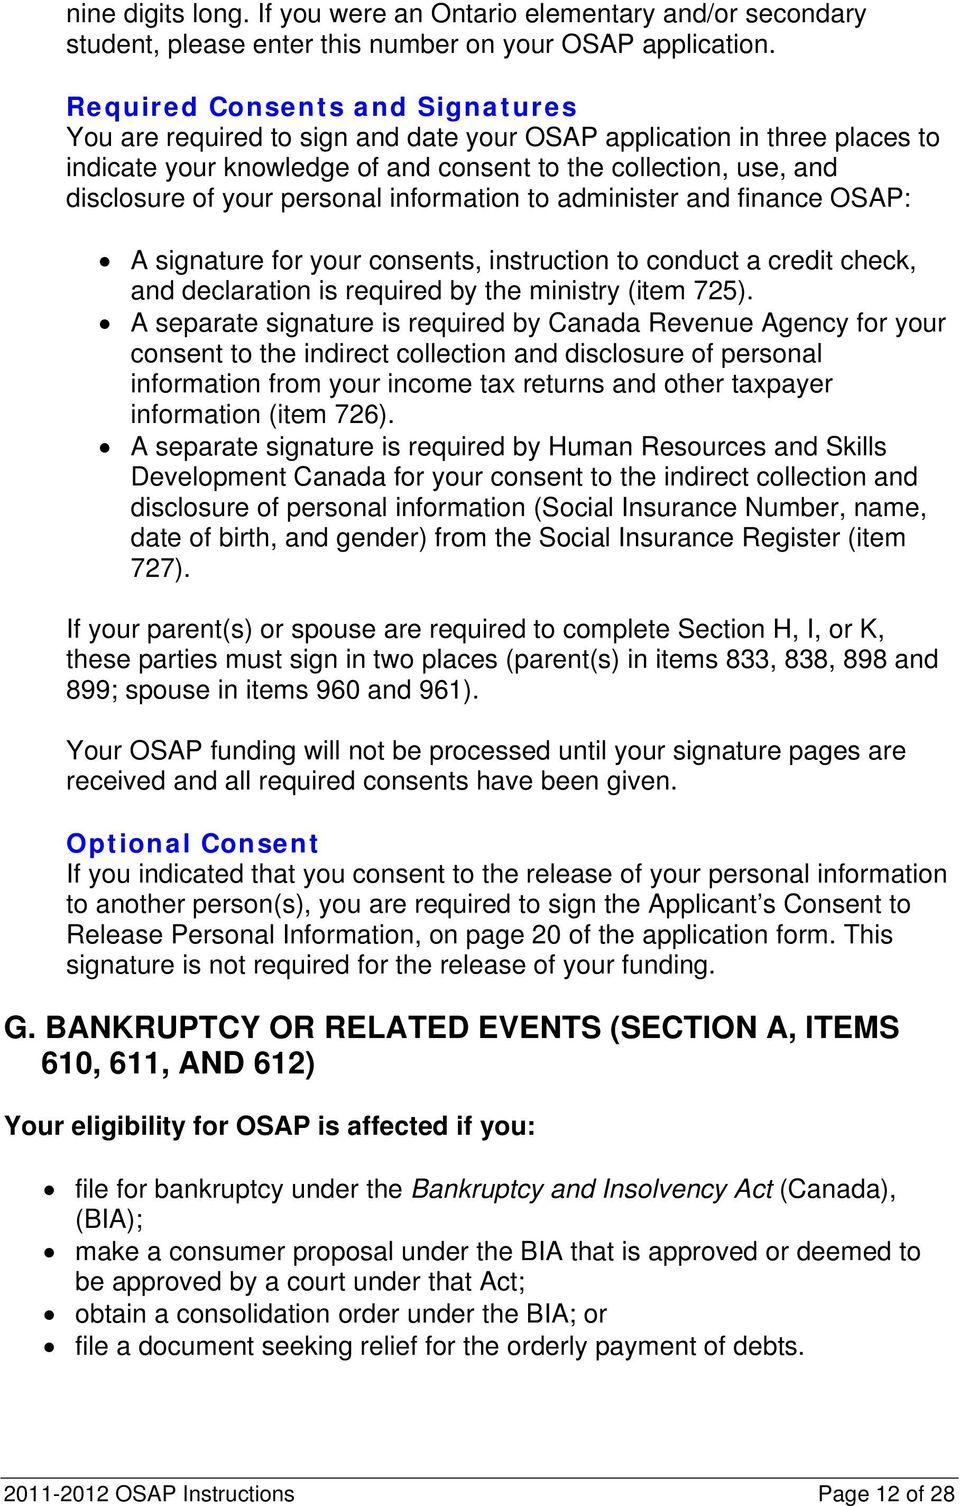 personal information to administer and finance OSAP: A signature for your consents, instruction to conduct a credit check, and declaration is required by the ministry (item 725).